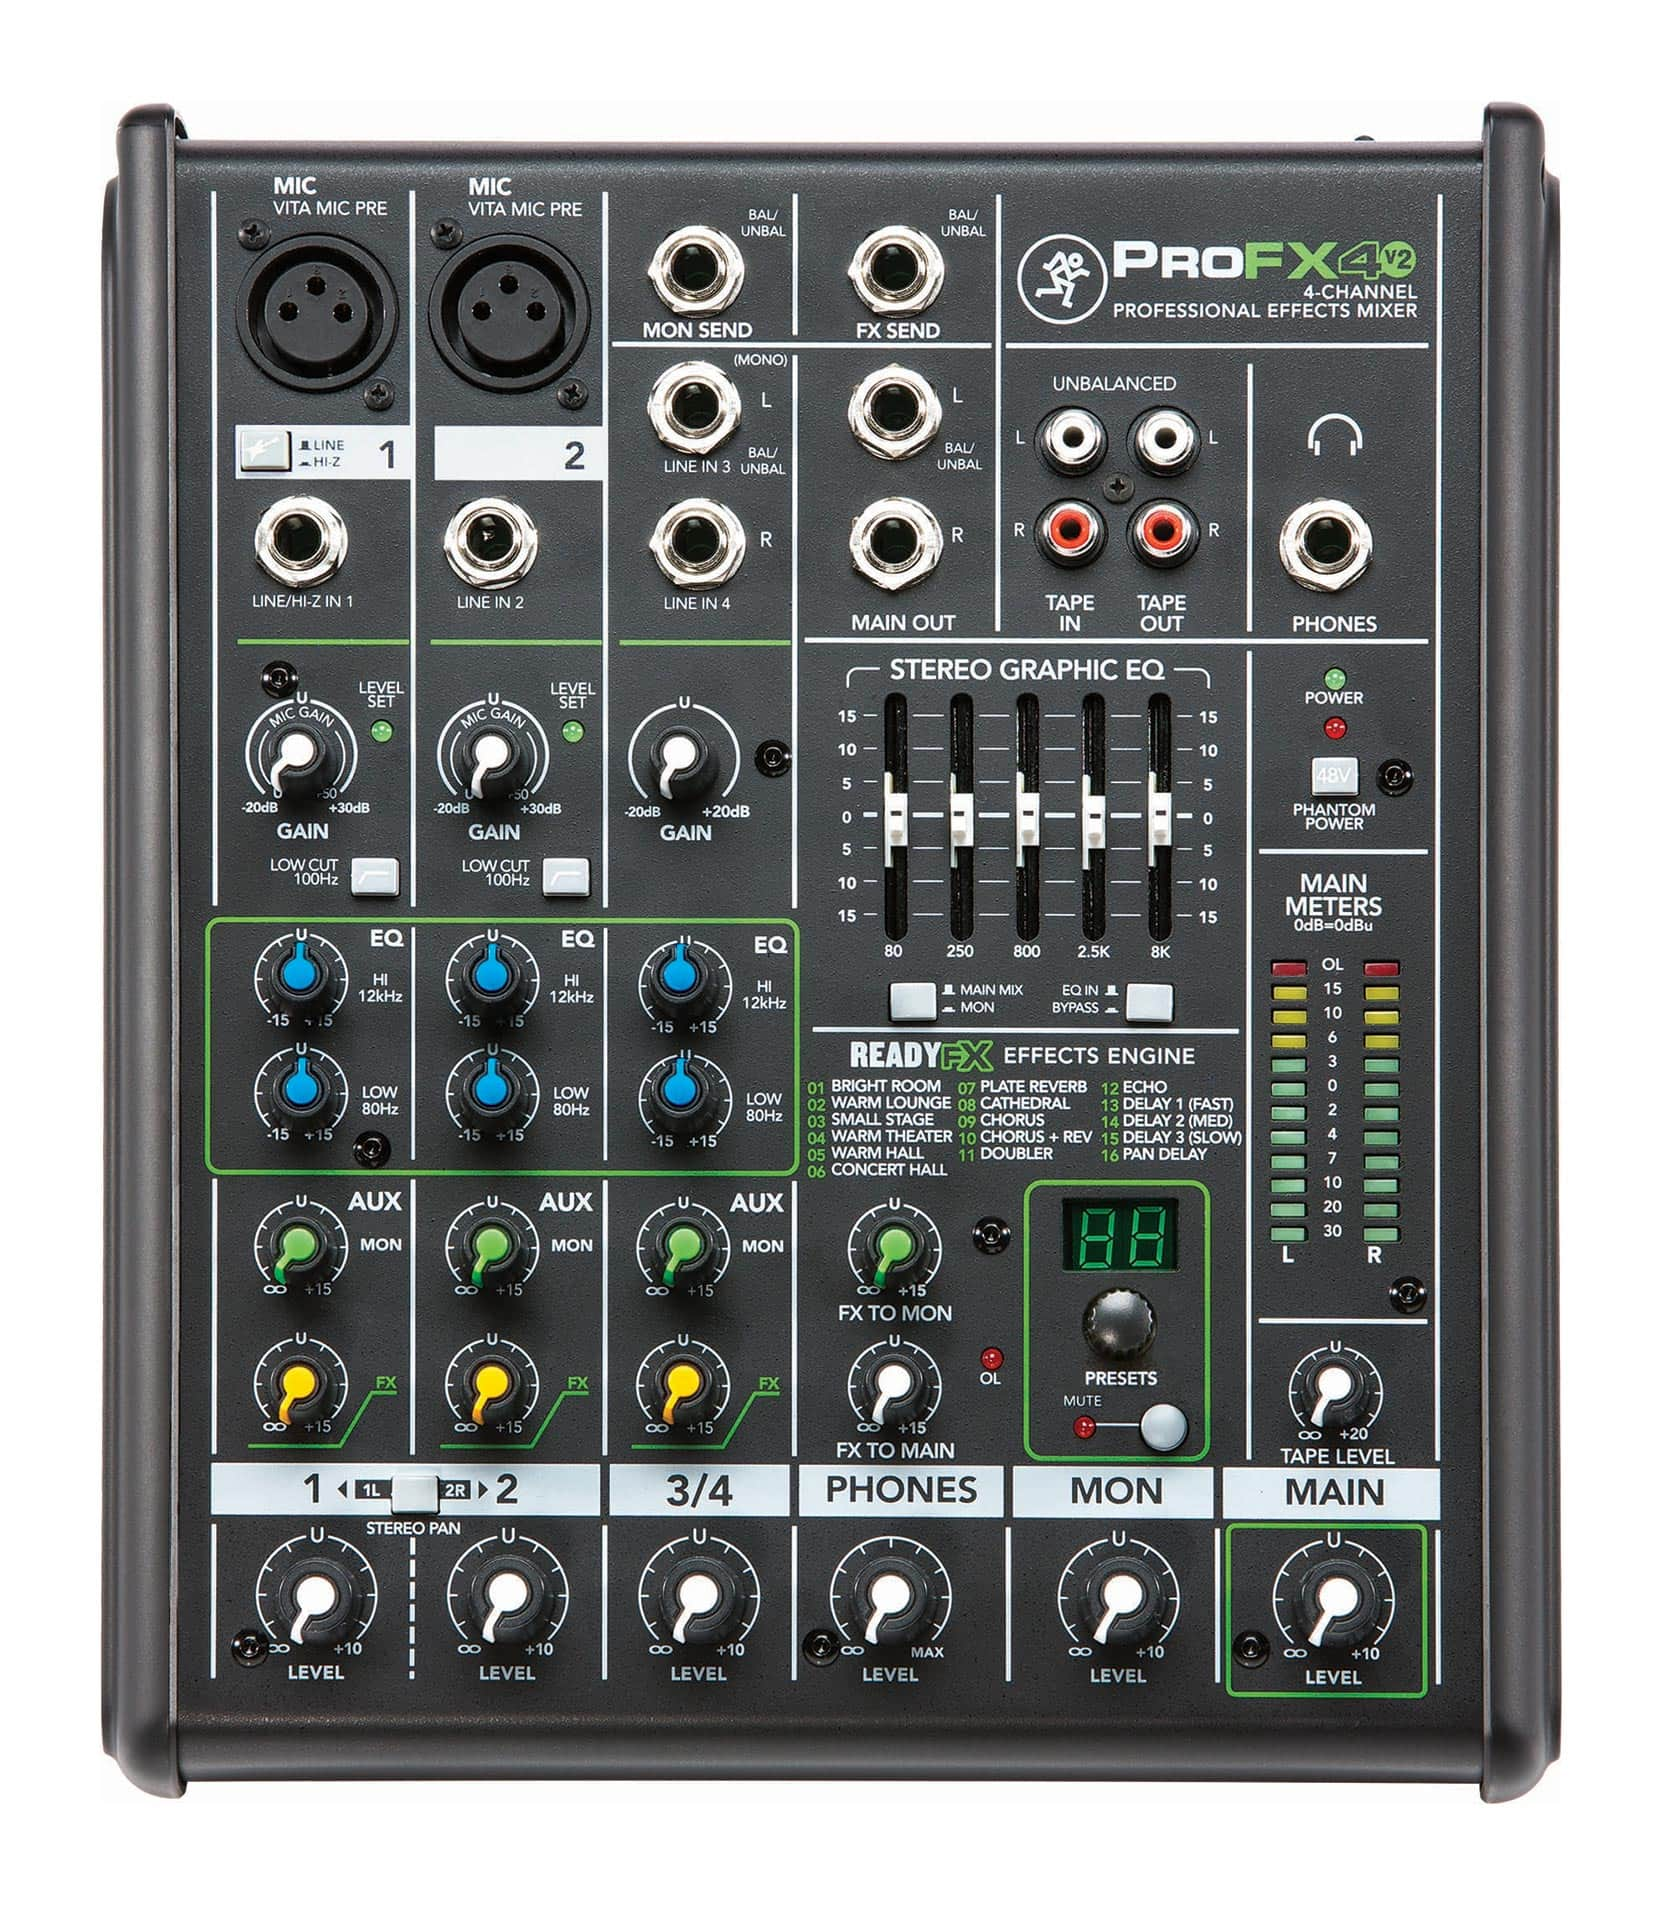 ProFX4v2 UK 4 channel Professional Effects Mixer